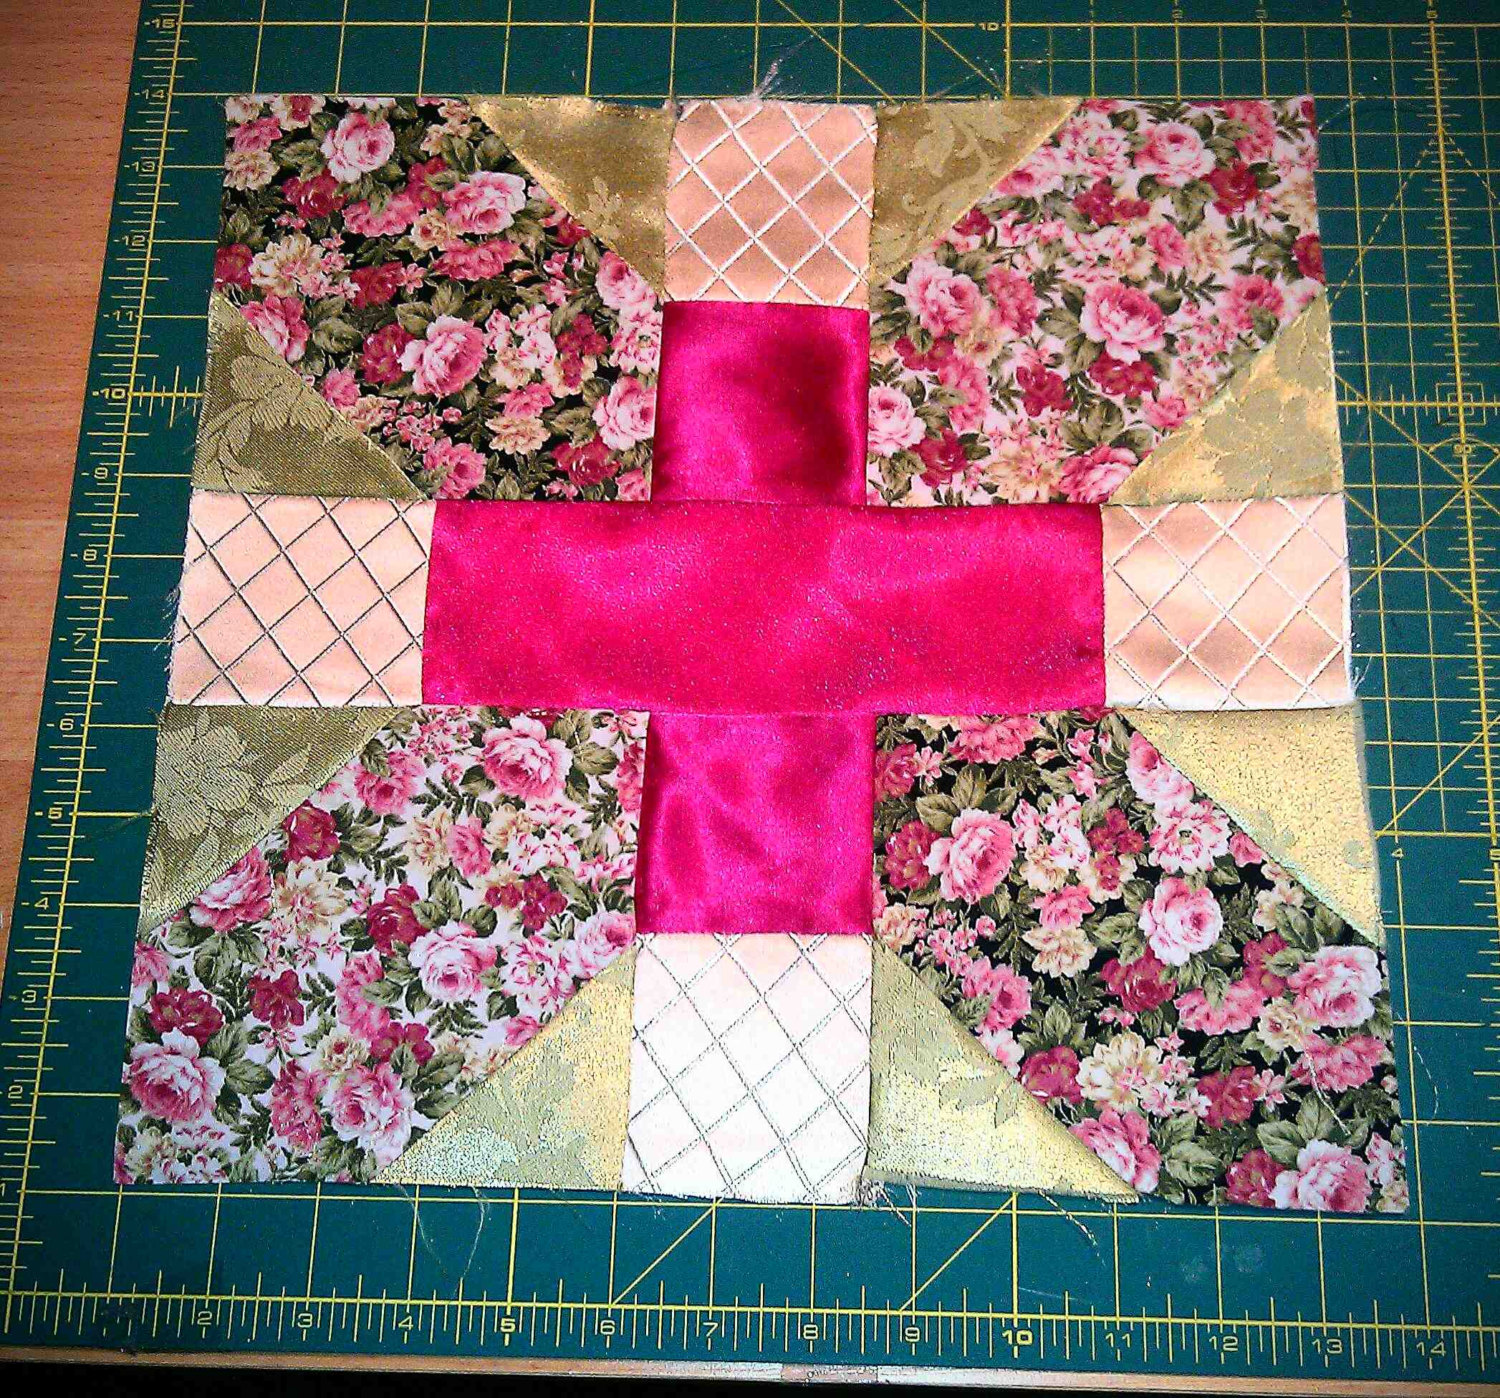 X plus quilt 125 block 14 inch seam 4 pieces aka spool x plus quilt 125 block 14 inch seam 4 pieces aka spool block by nancy cabot 1937 acrylic quilt templates pronofoot35fo Choice Image